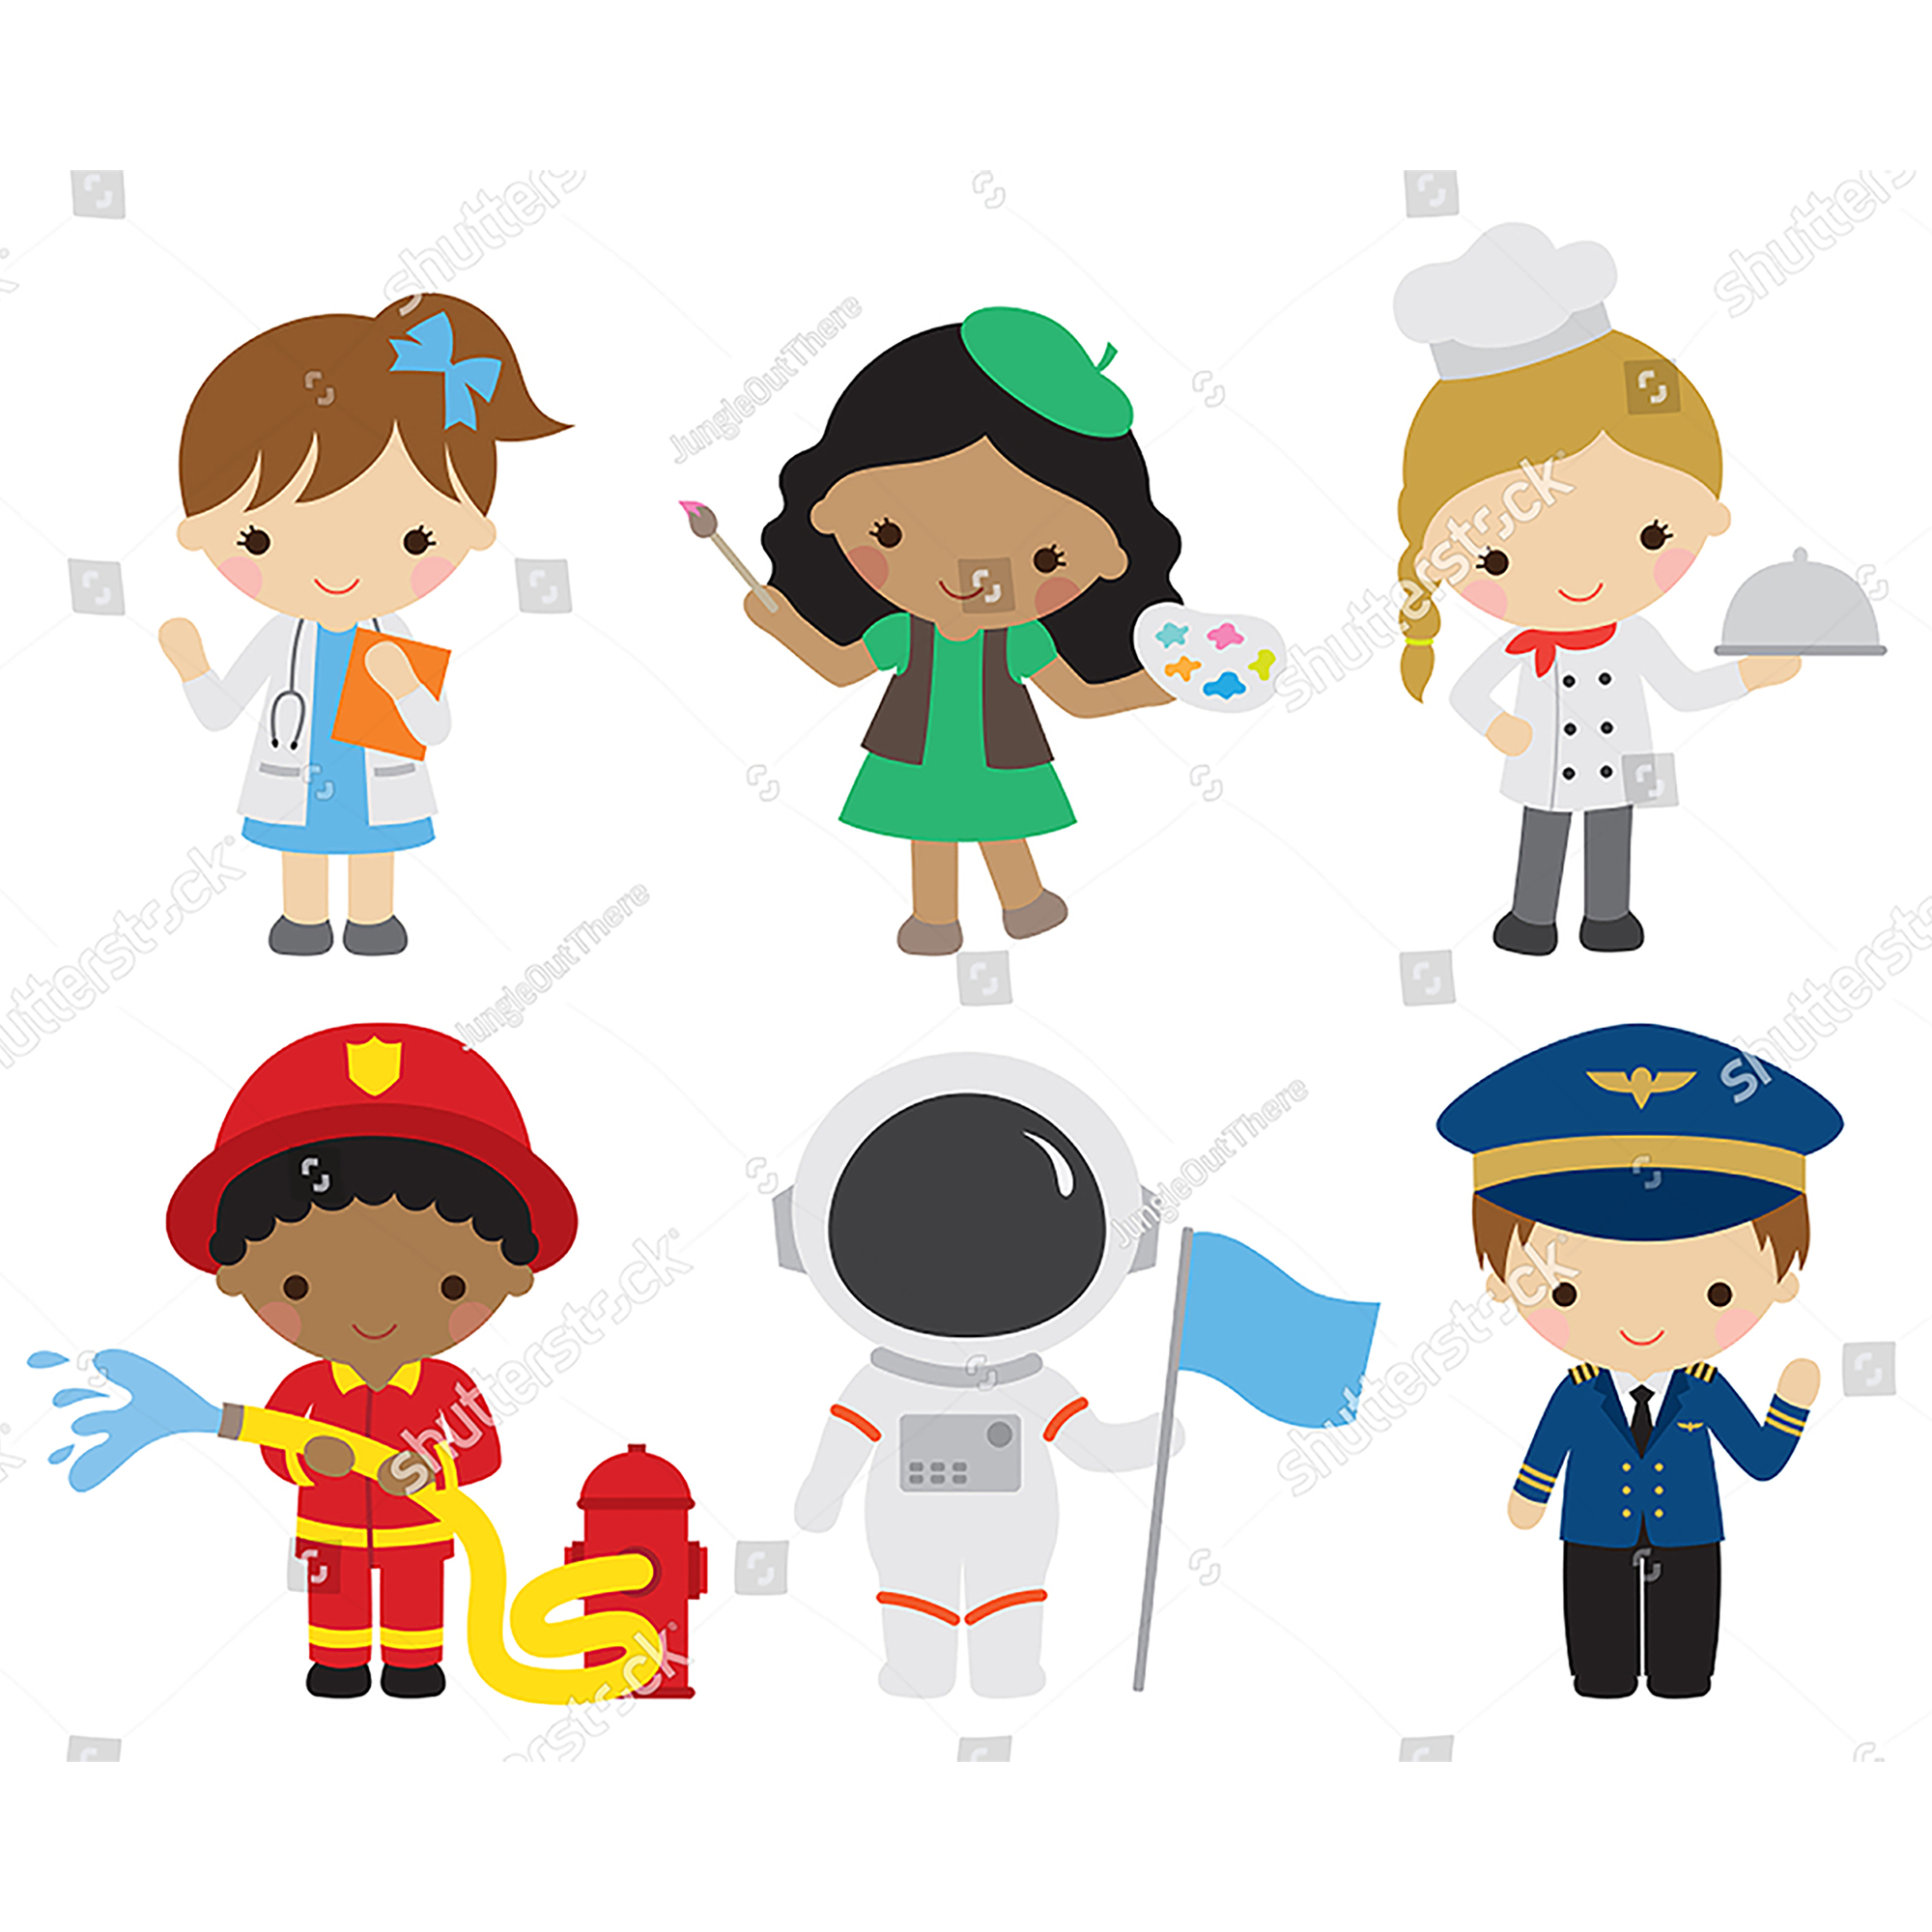 Hot Career Girls And Boy Metal Cutting Dies Lovely Princess Fireman Astronaut Police Doll Stencil Embossing For DIY Scrapbooking